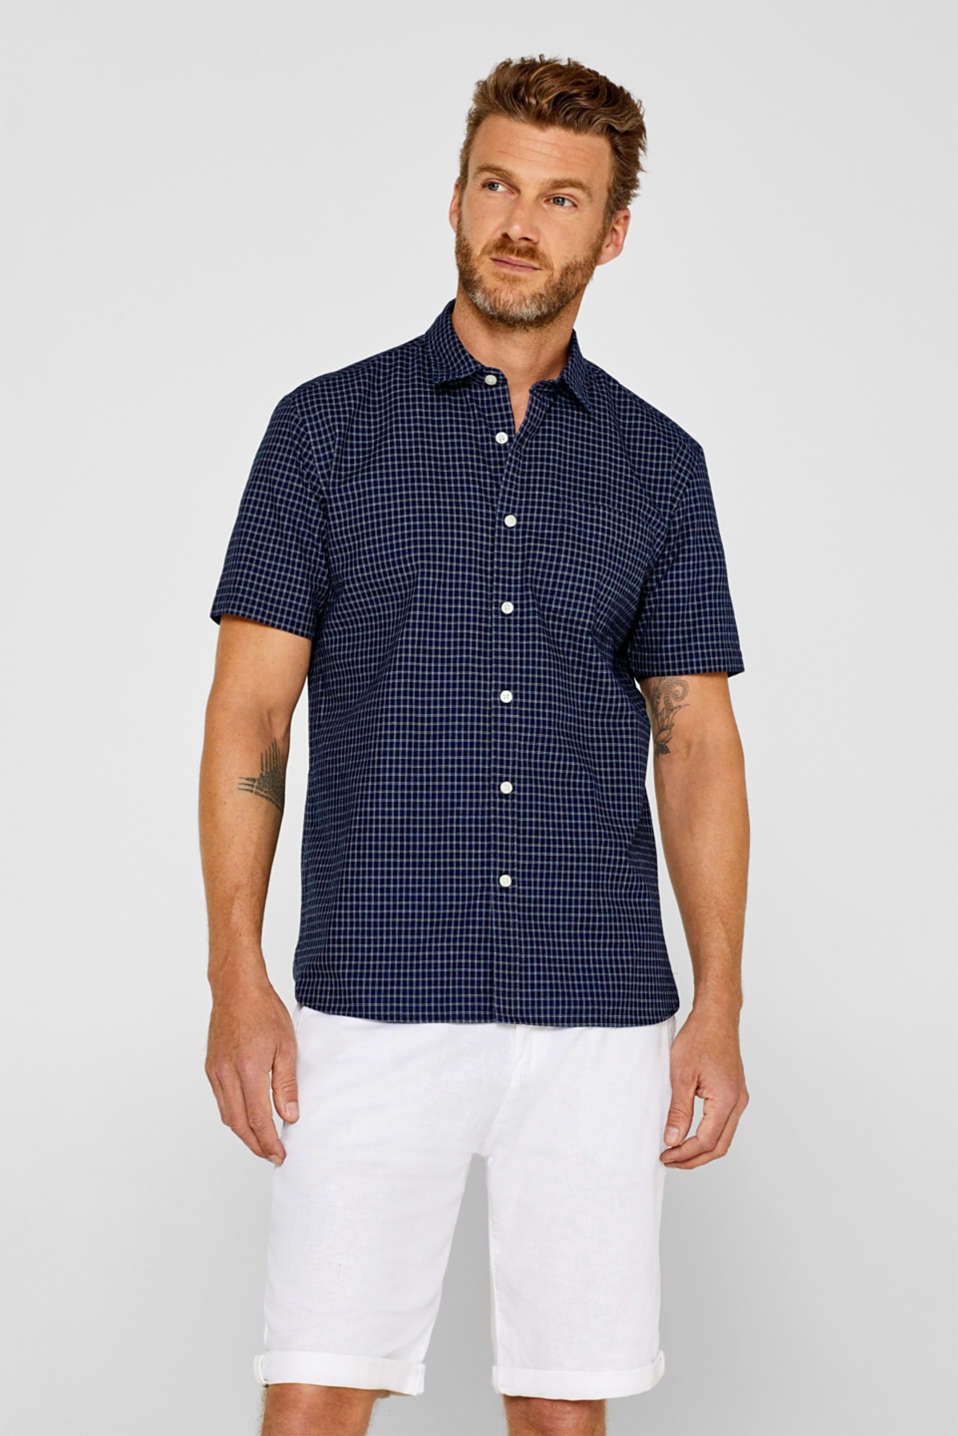 Esprit - Short sleeve shirt with an indigo dye effect, 100% cotton